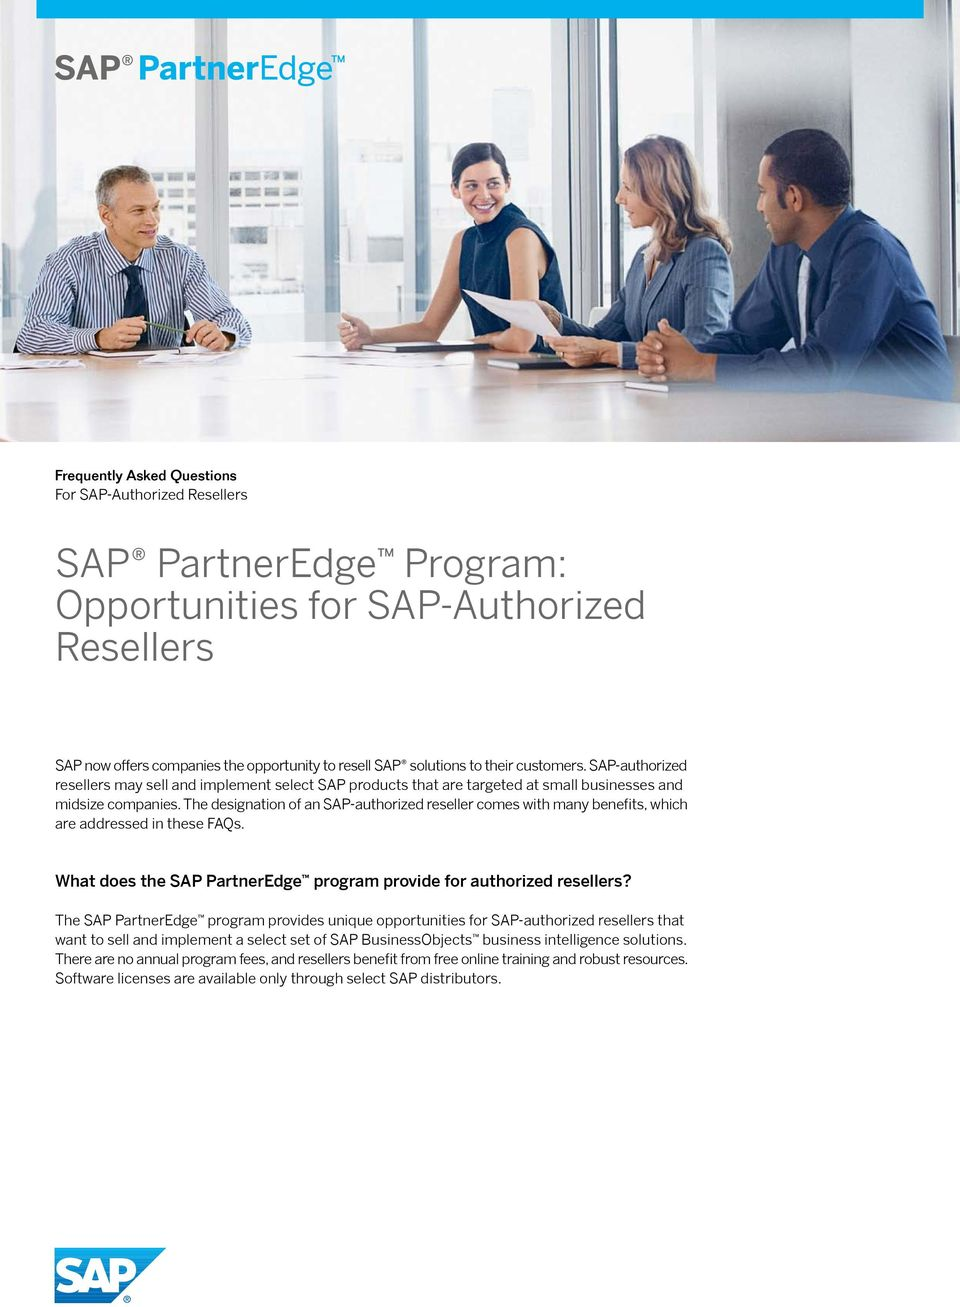 The designation of an SAP-authorized reseller comes with many benefits, which are addressed in these FAQs. What does the SAP PartnerEdge program provide for authorized resellers?